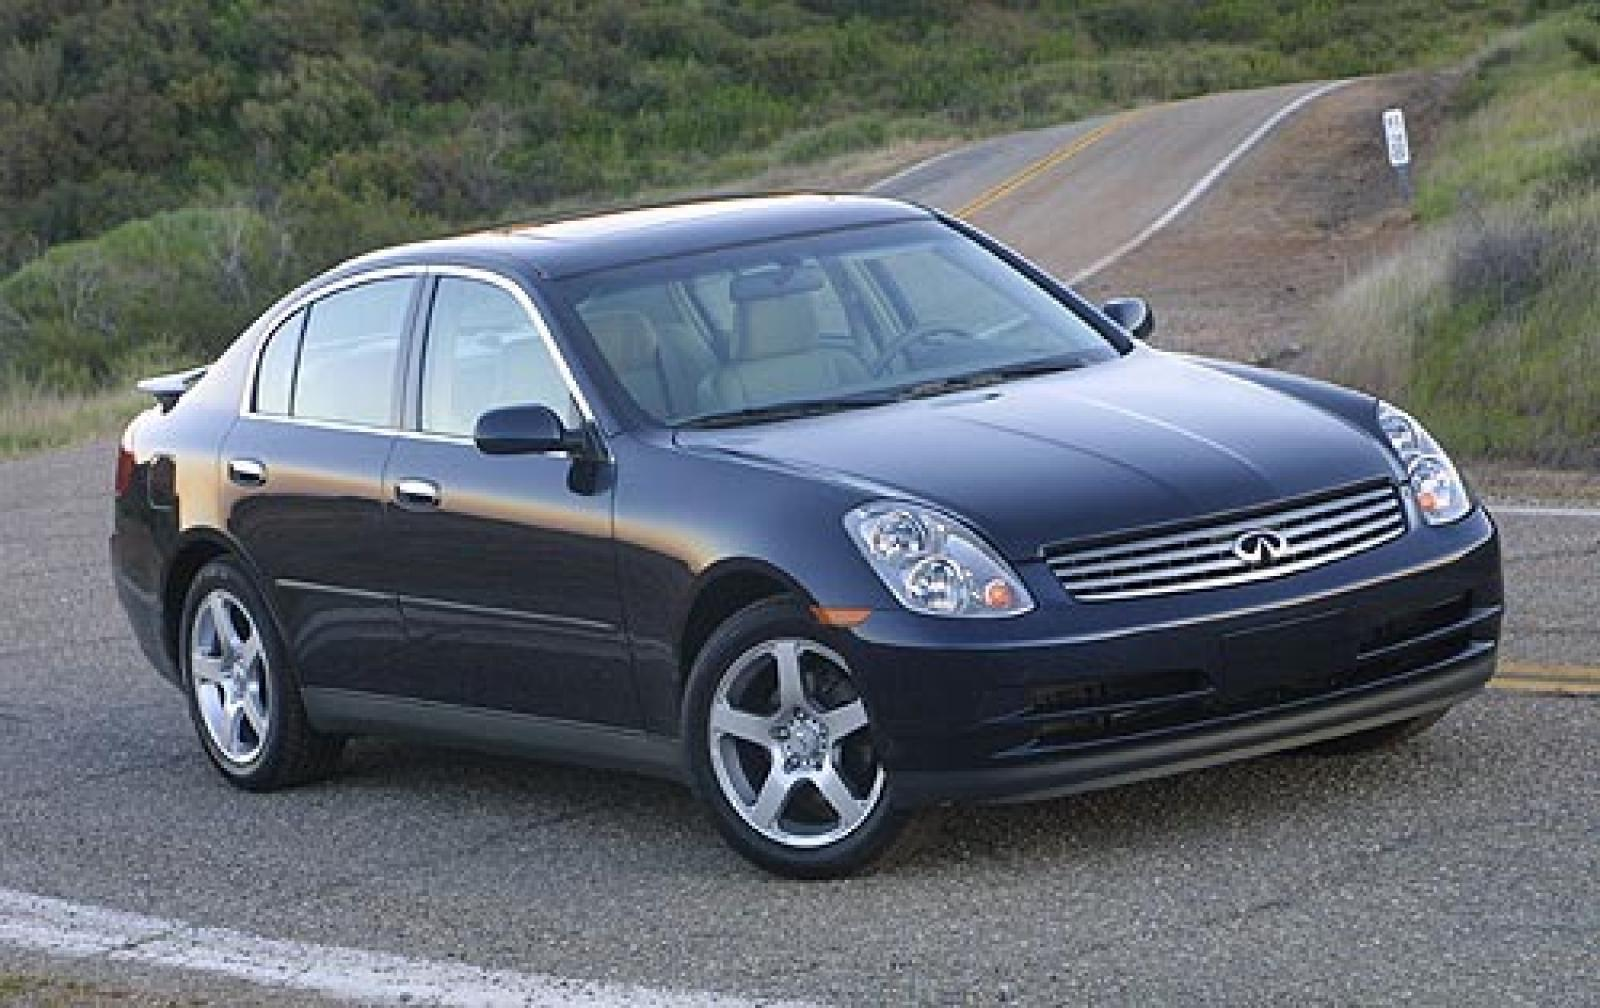 All Types infinity g35 2003 : 2003 Infiniti G35 - Information and photos - ZombieDrive